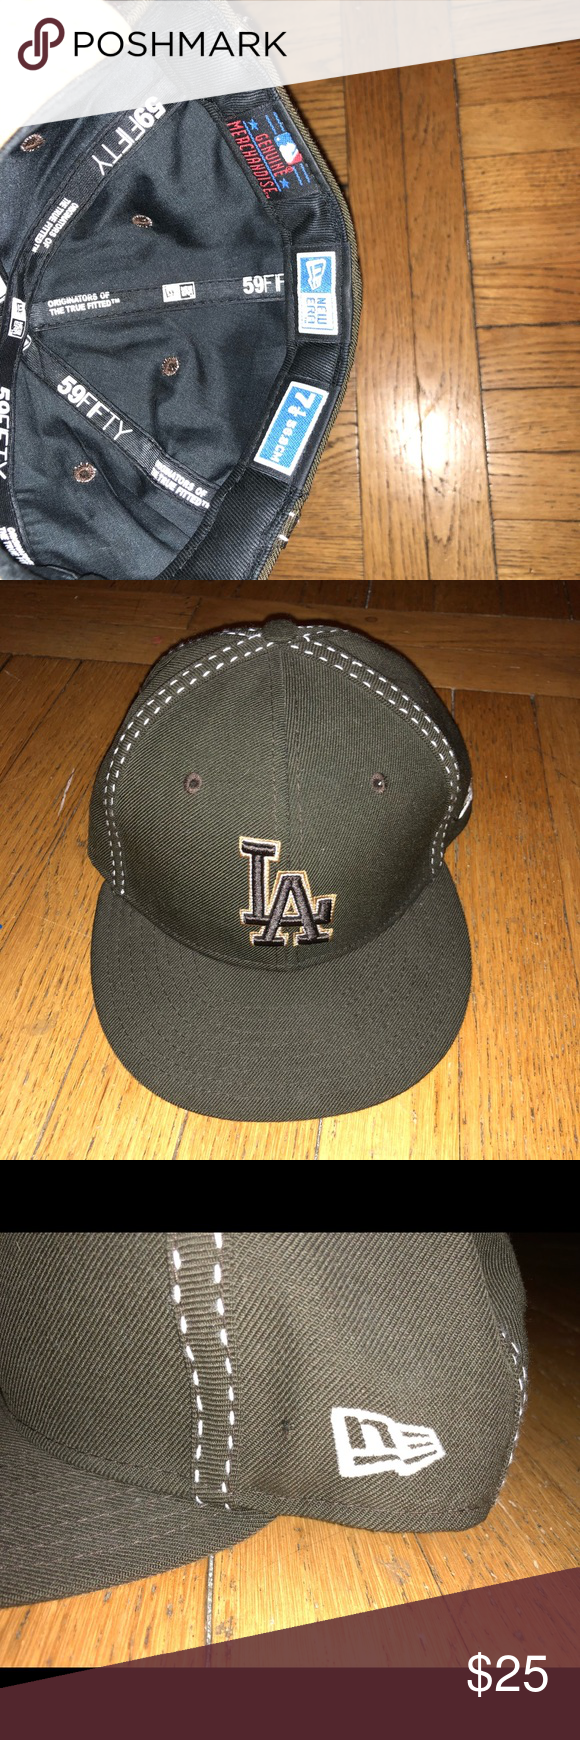 New Era La Fitted Hat Size 7 1 8 Fitted Hats Hat Sizes New Era